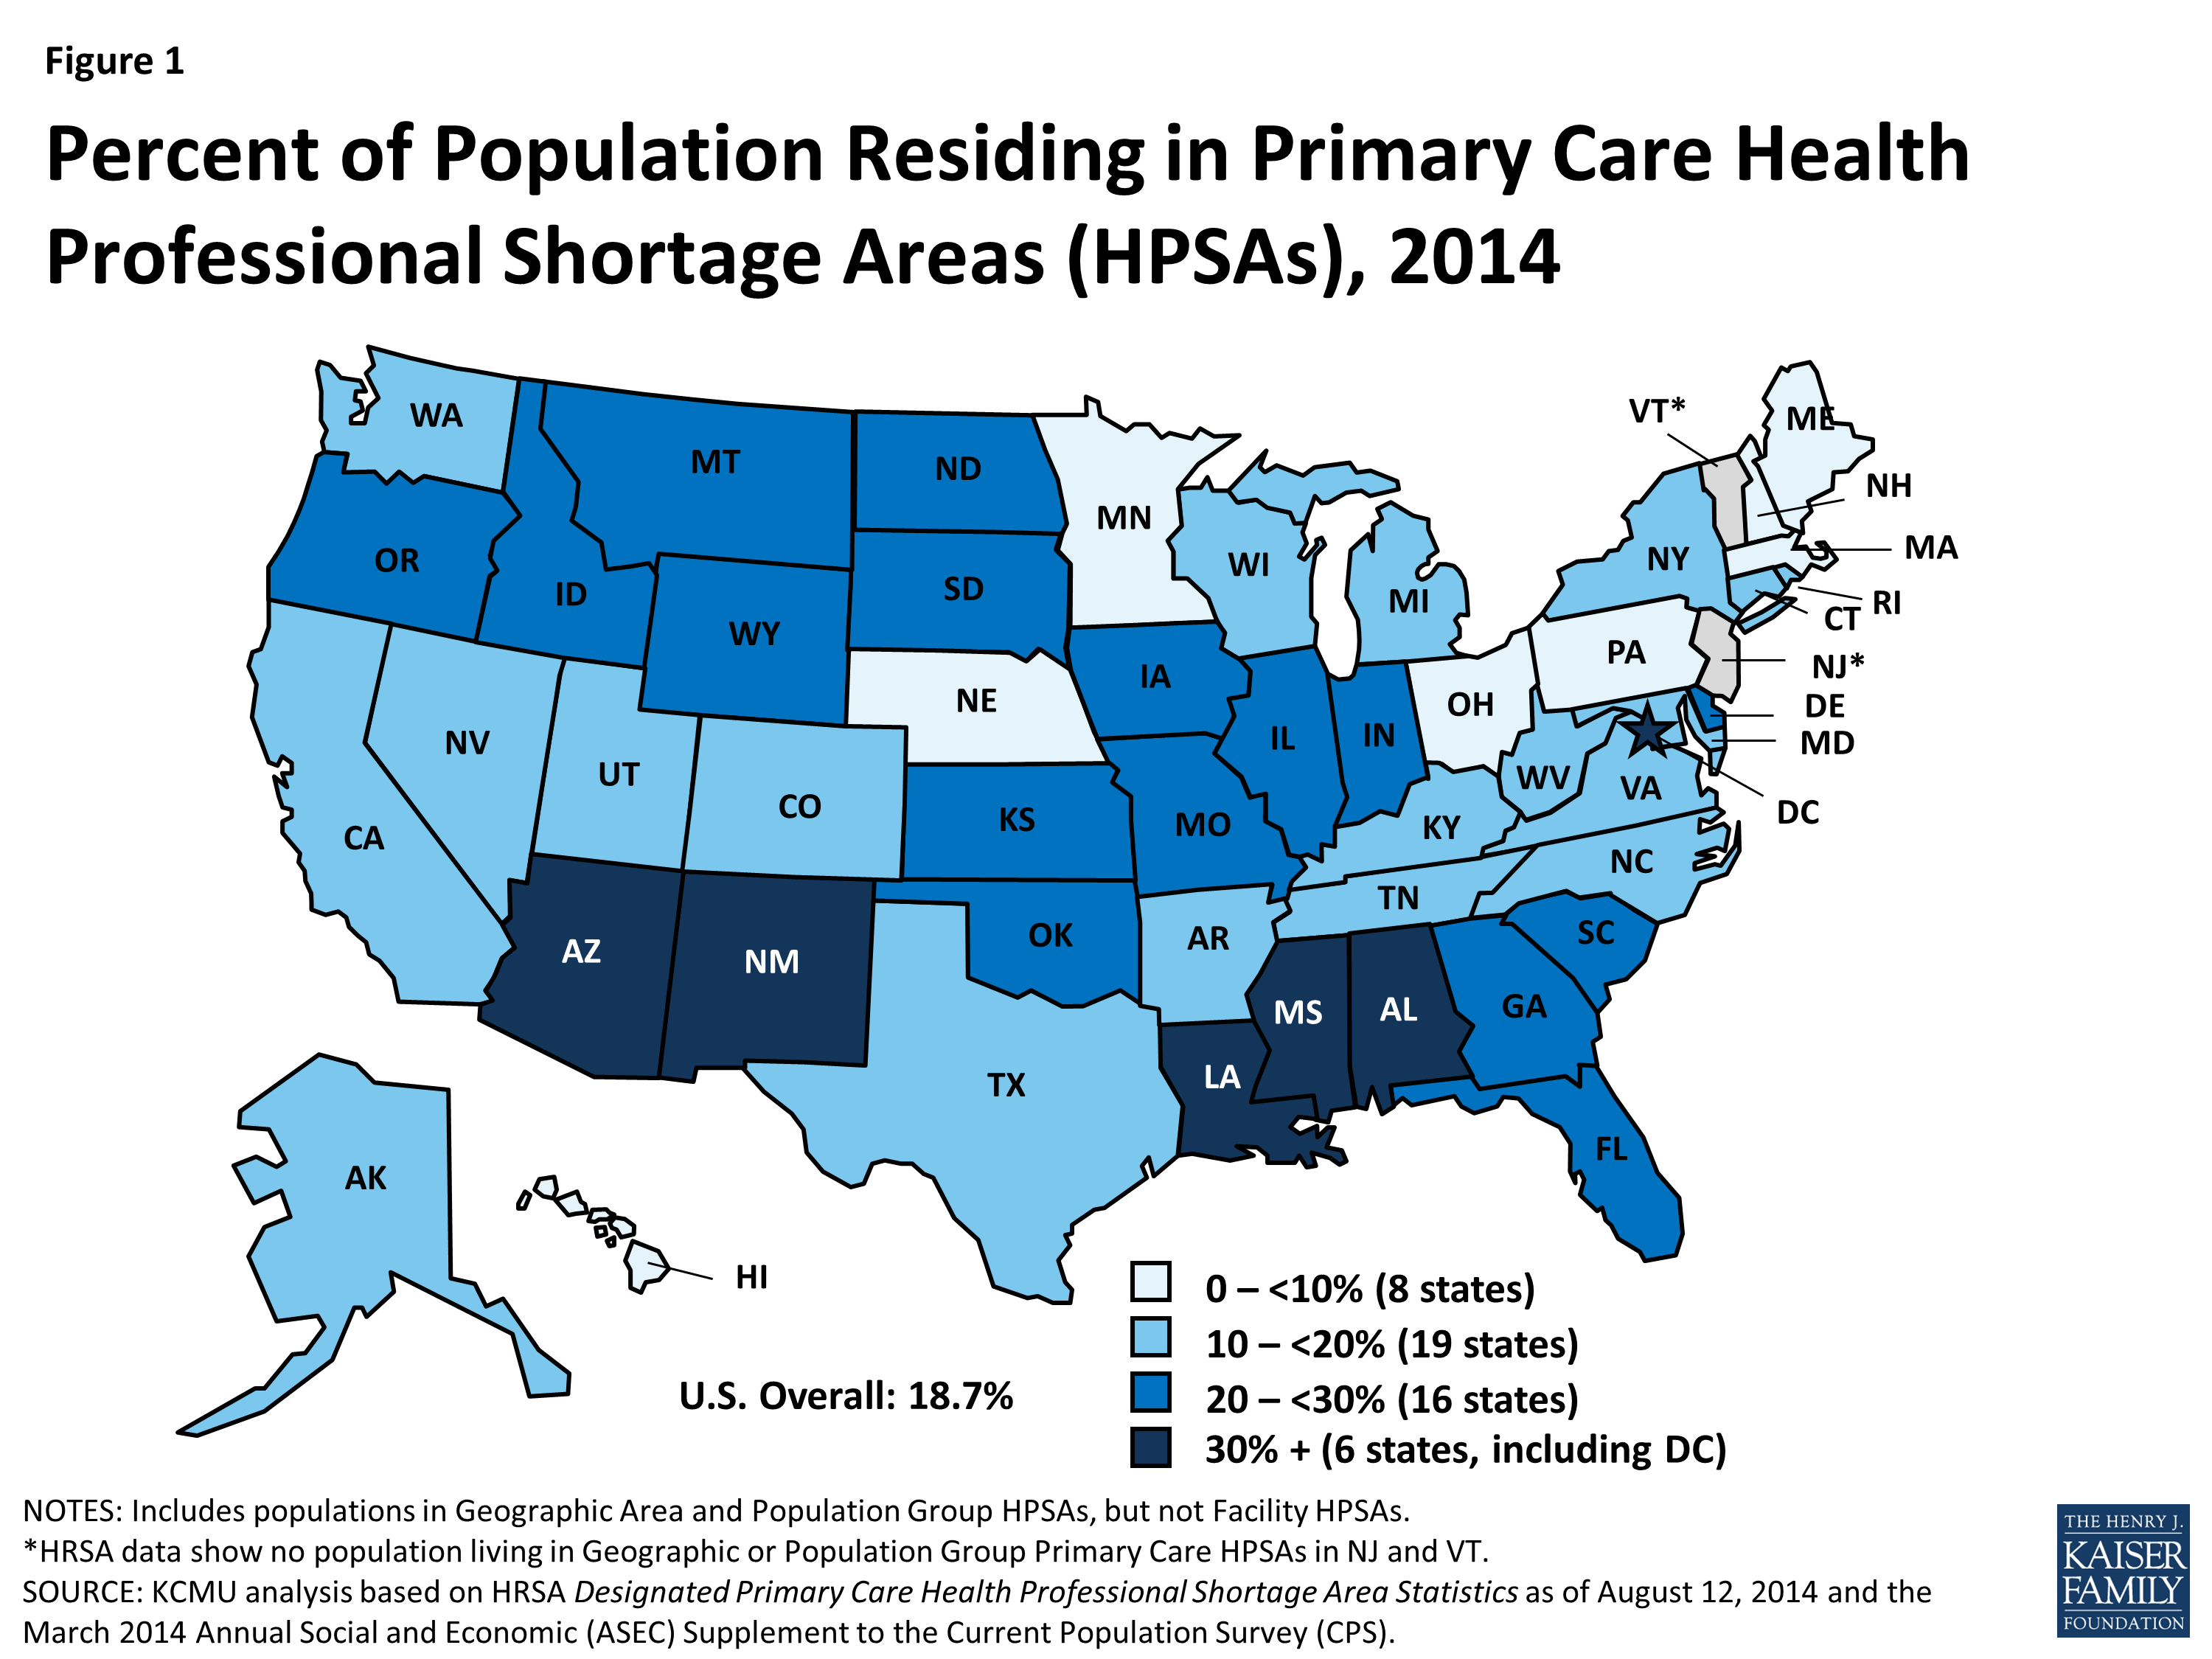 Collaborative Practice Agreement Nurse Practitioner Tapping Nurse Practitioners To Meet Rising Demand For Primary Care